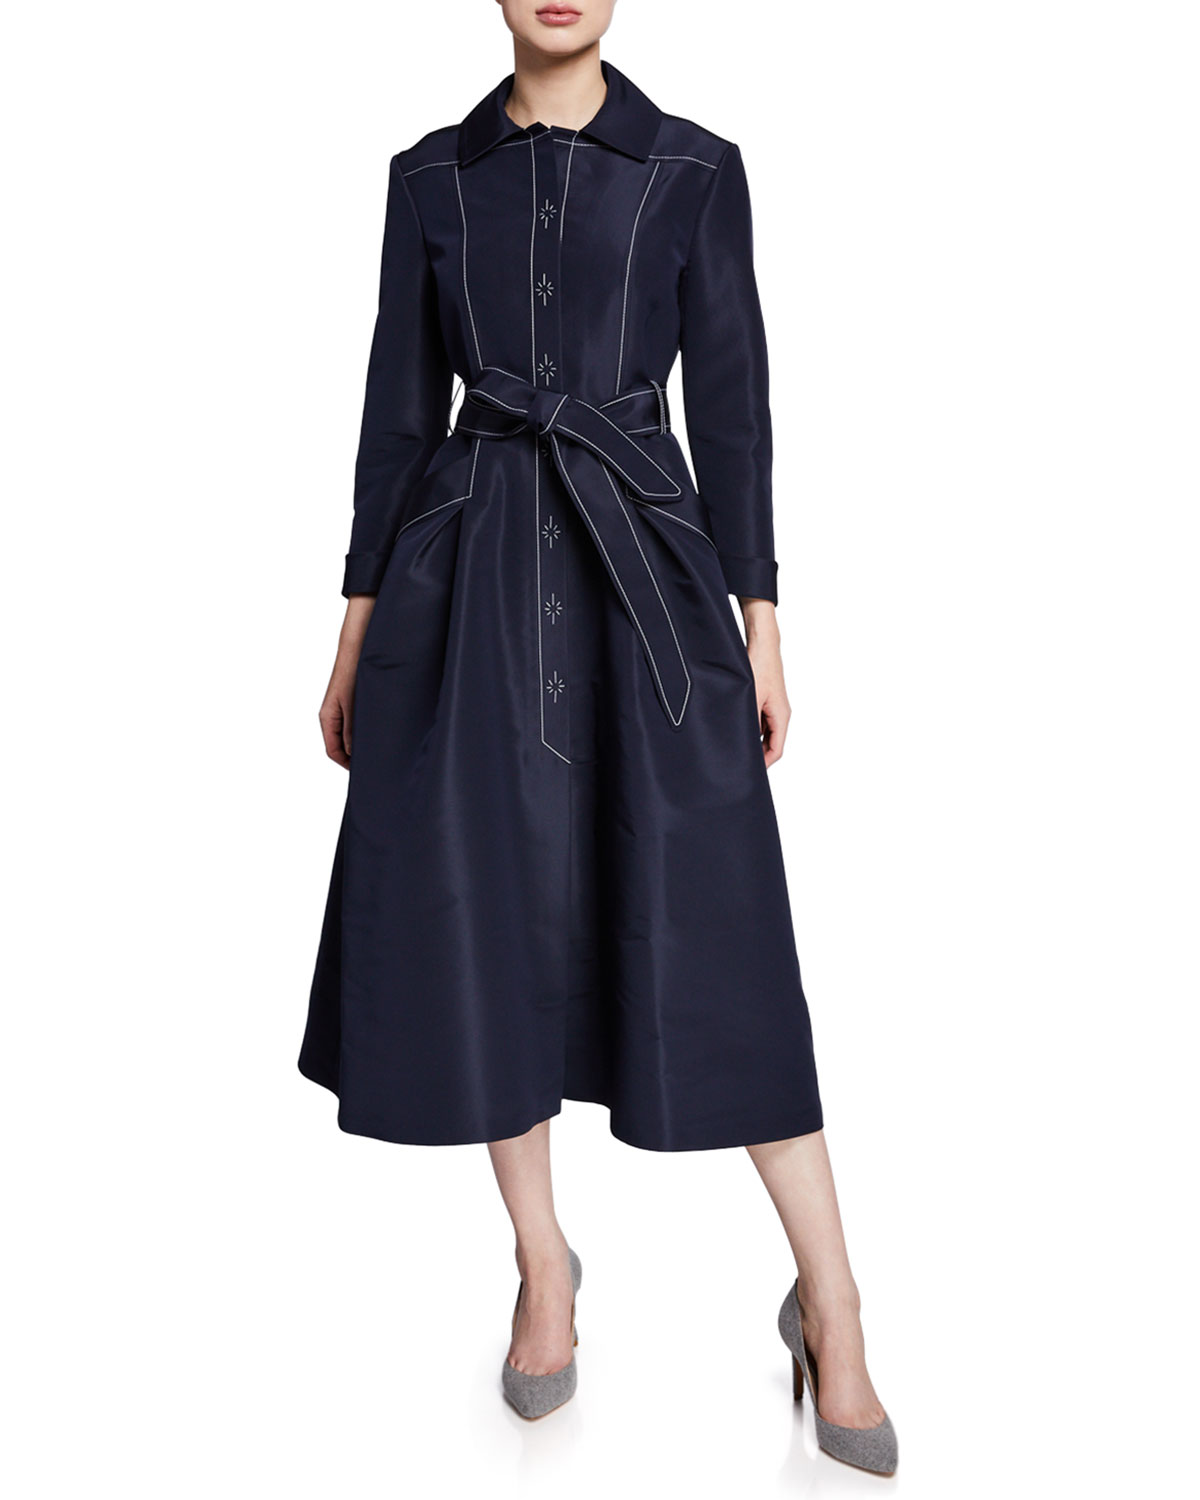 ATELIER CAITO FOR HERVE PIERRE A-Line Belted Silk Faille Gown in Navy